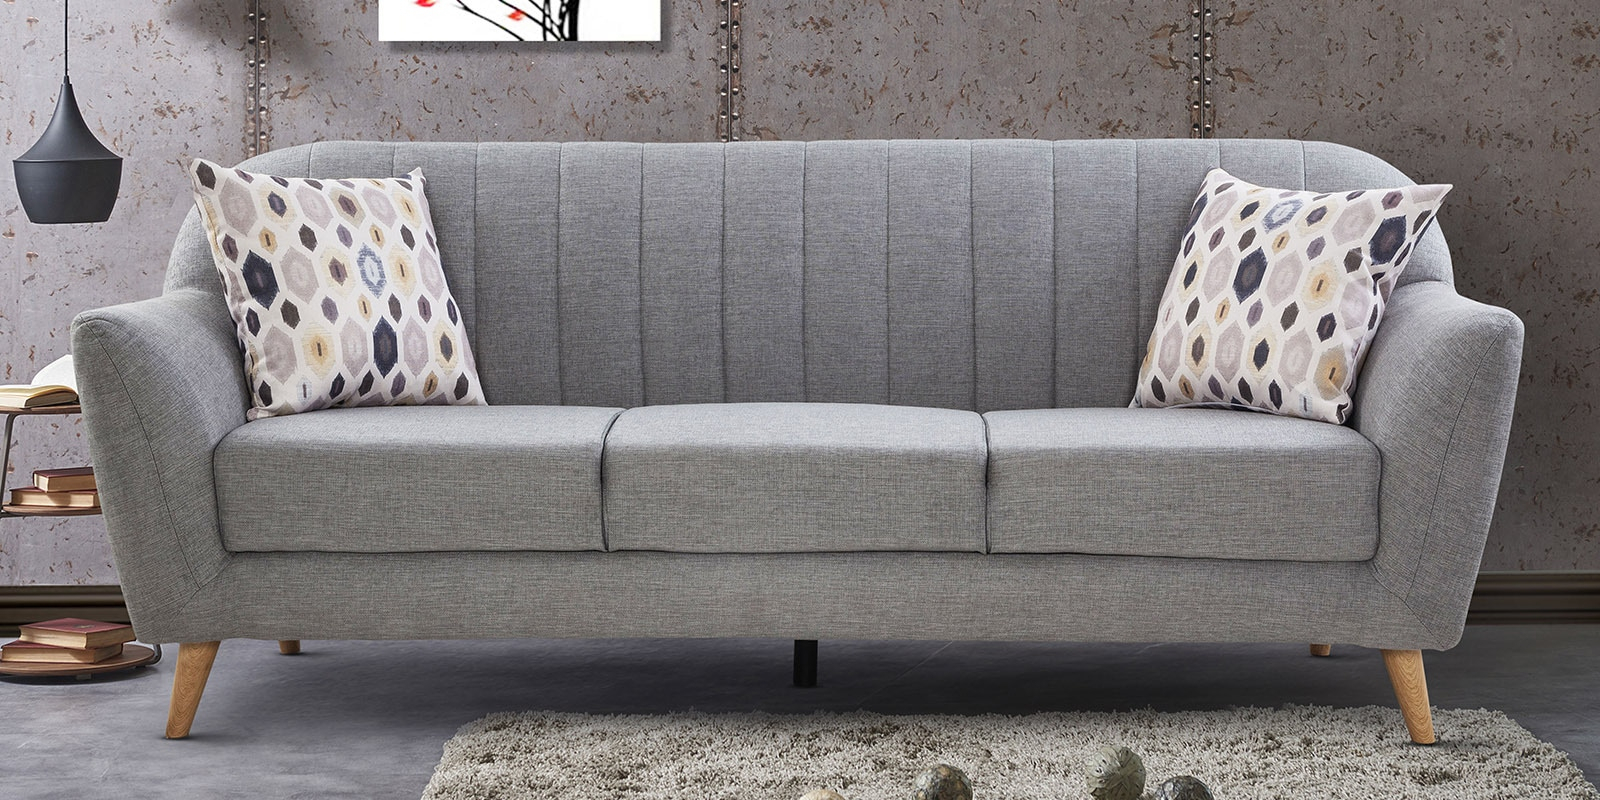 Buy Antalya 3 Seater Sofa In Grey Coloururban Living Intended For Ludovic Contemporary Sofas Light Gray (View 7 of 15)